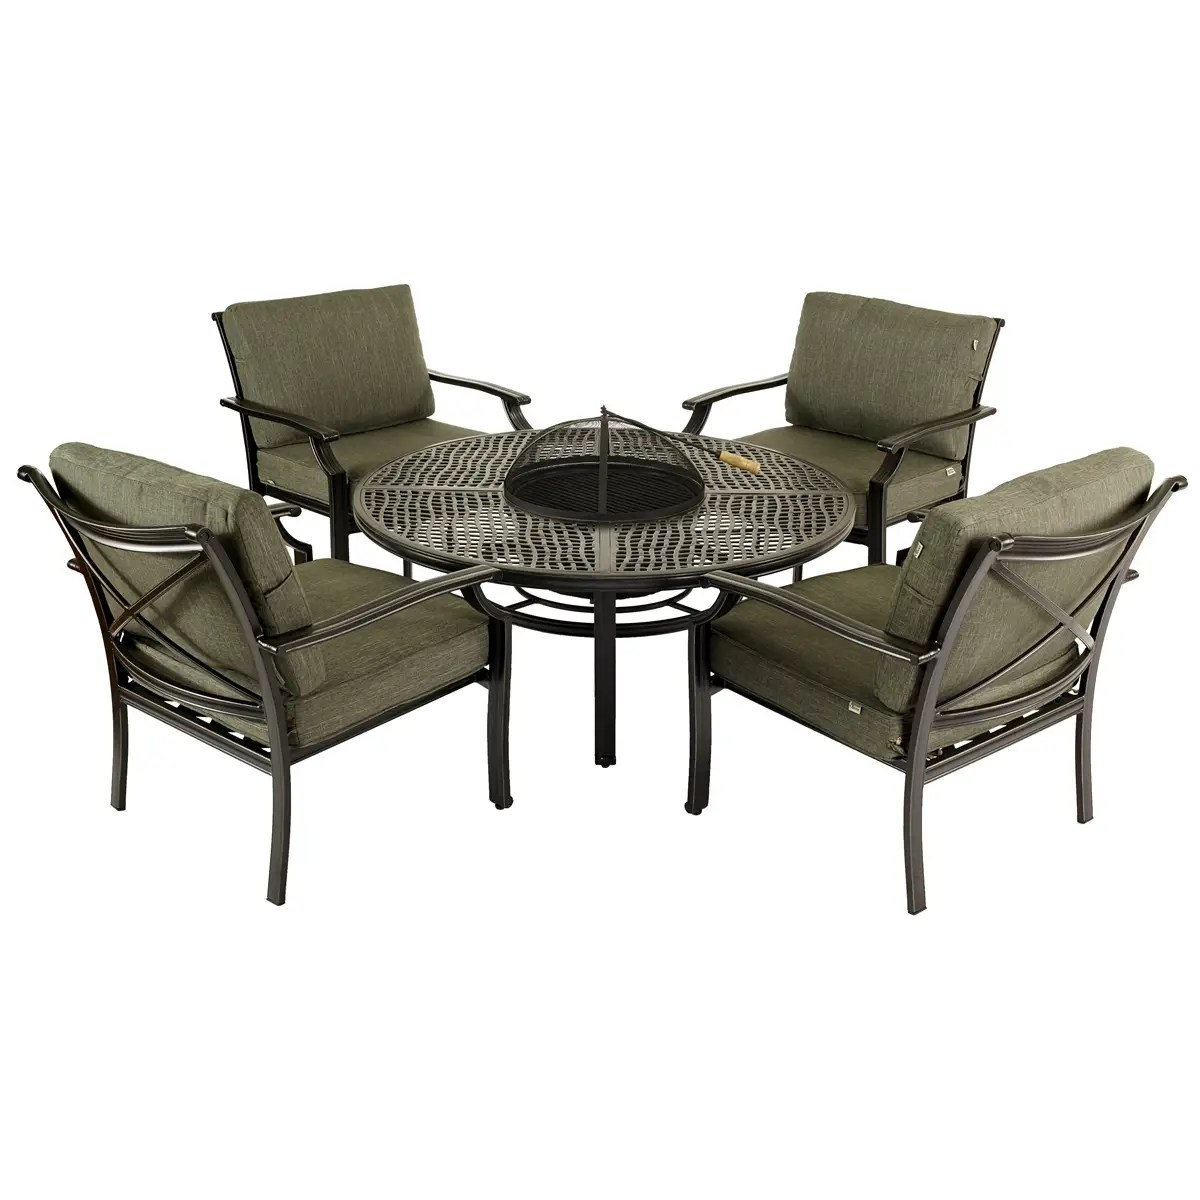 Fire Pit Table And Chairs Set Jamie Oliver Fire Pit Set Pesto 60773131 Garden